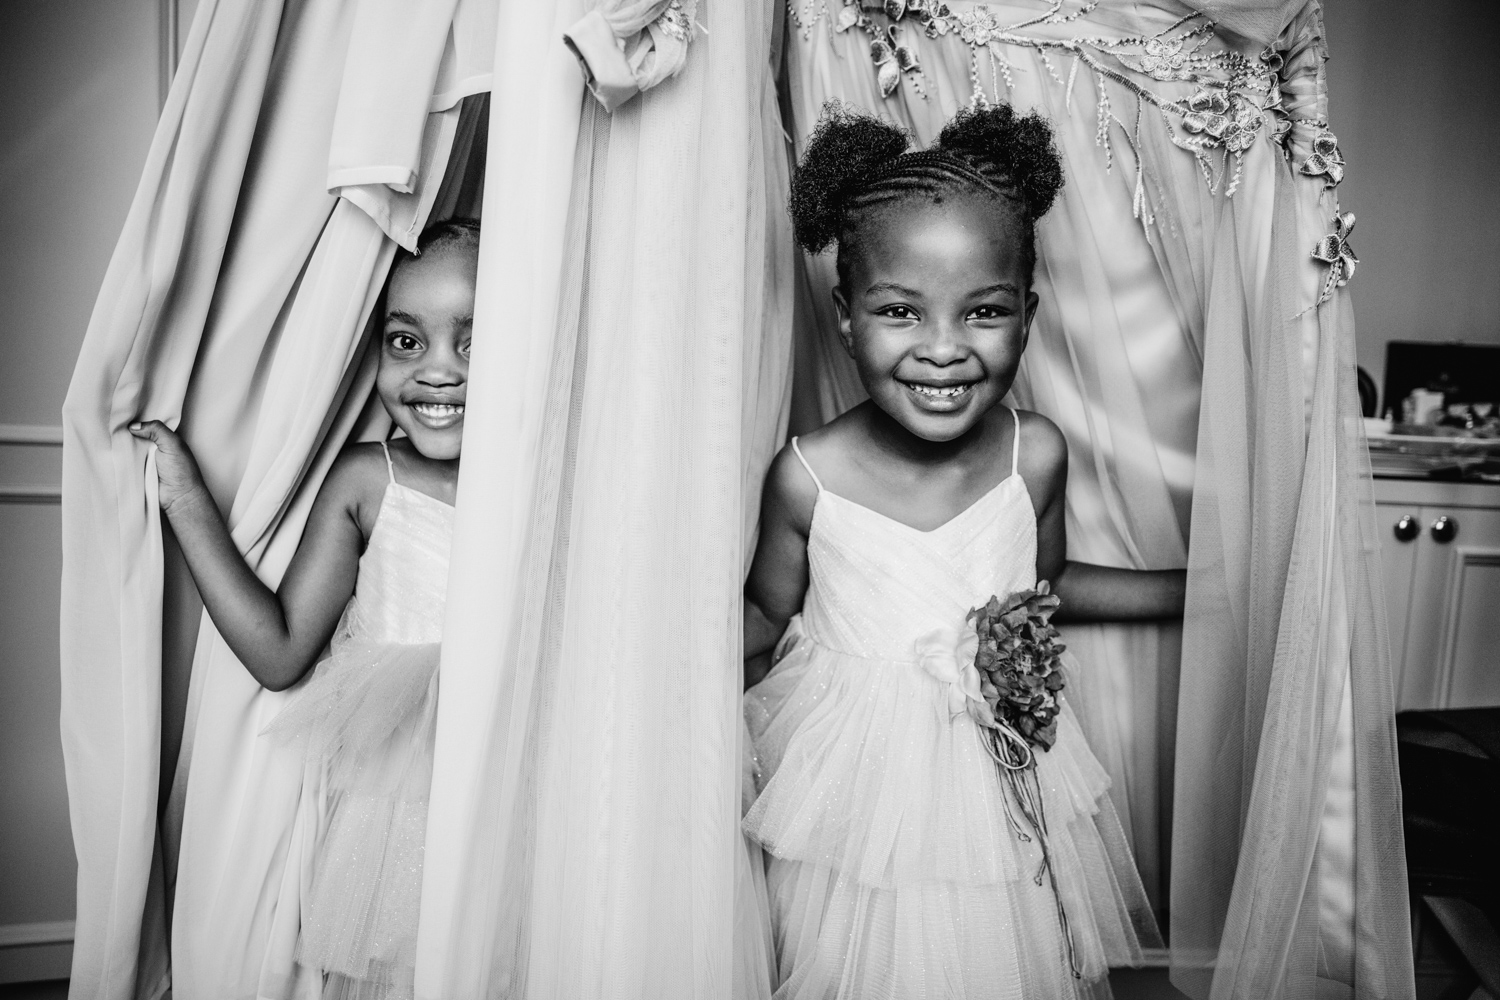 Two flower girls playing under the hanging bridesmaid dresses when everyone is getting ready for the wedding.